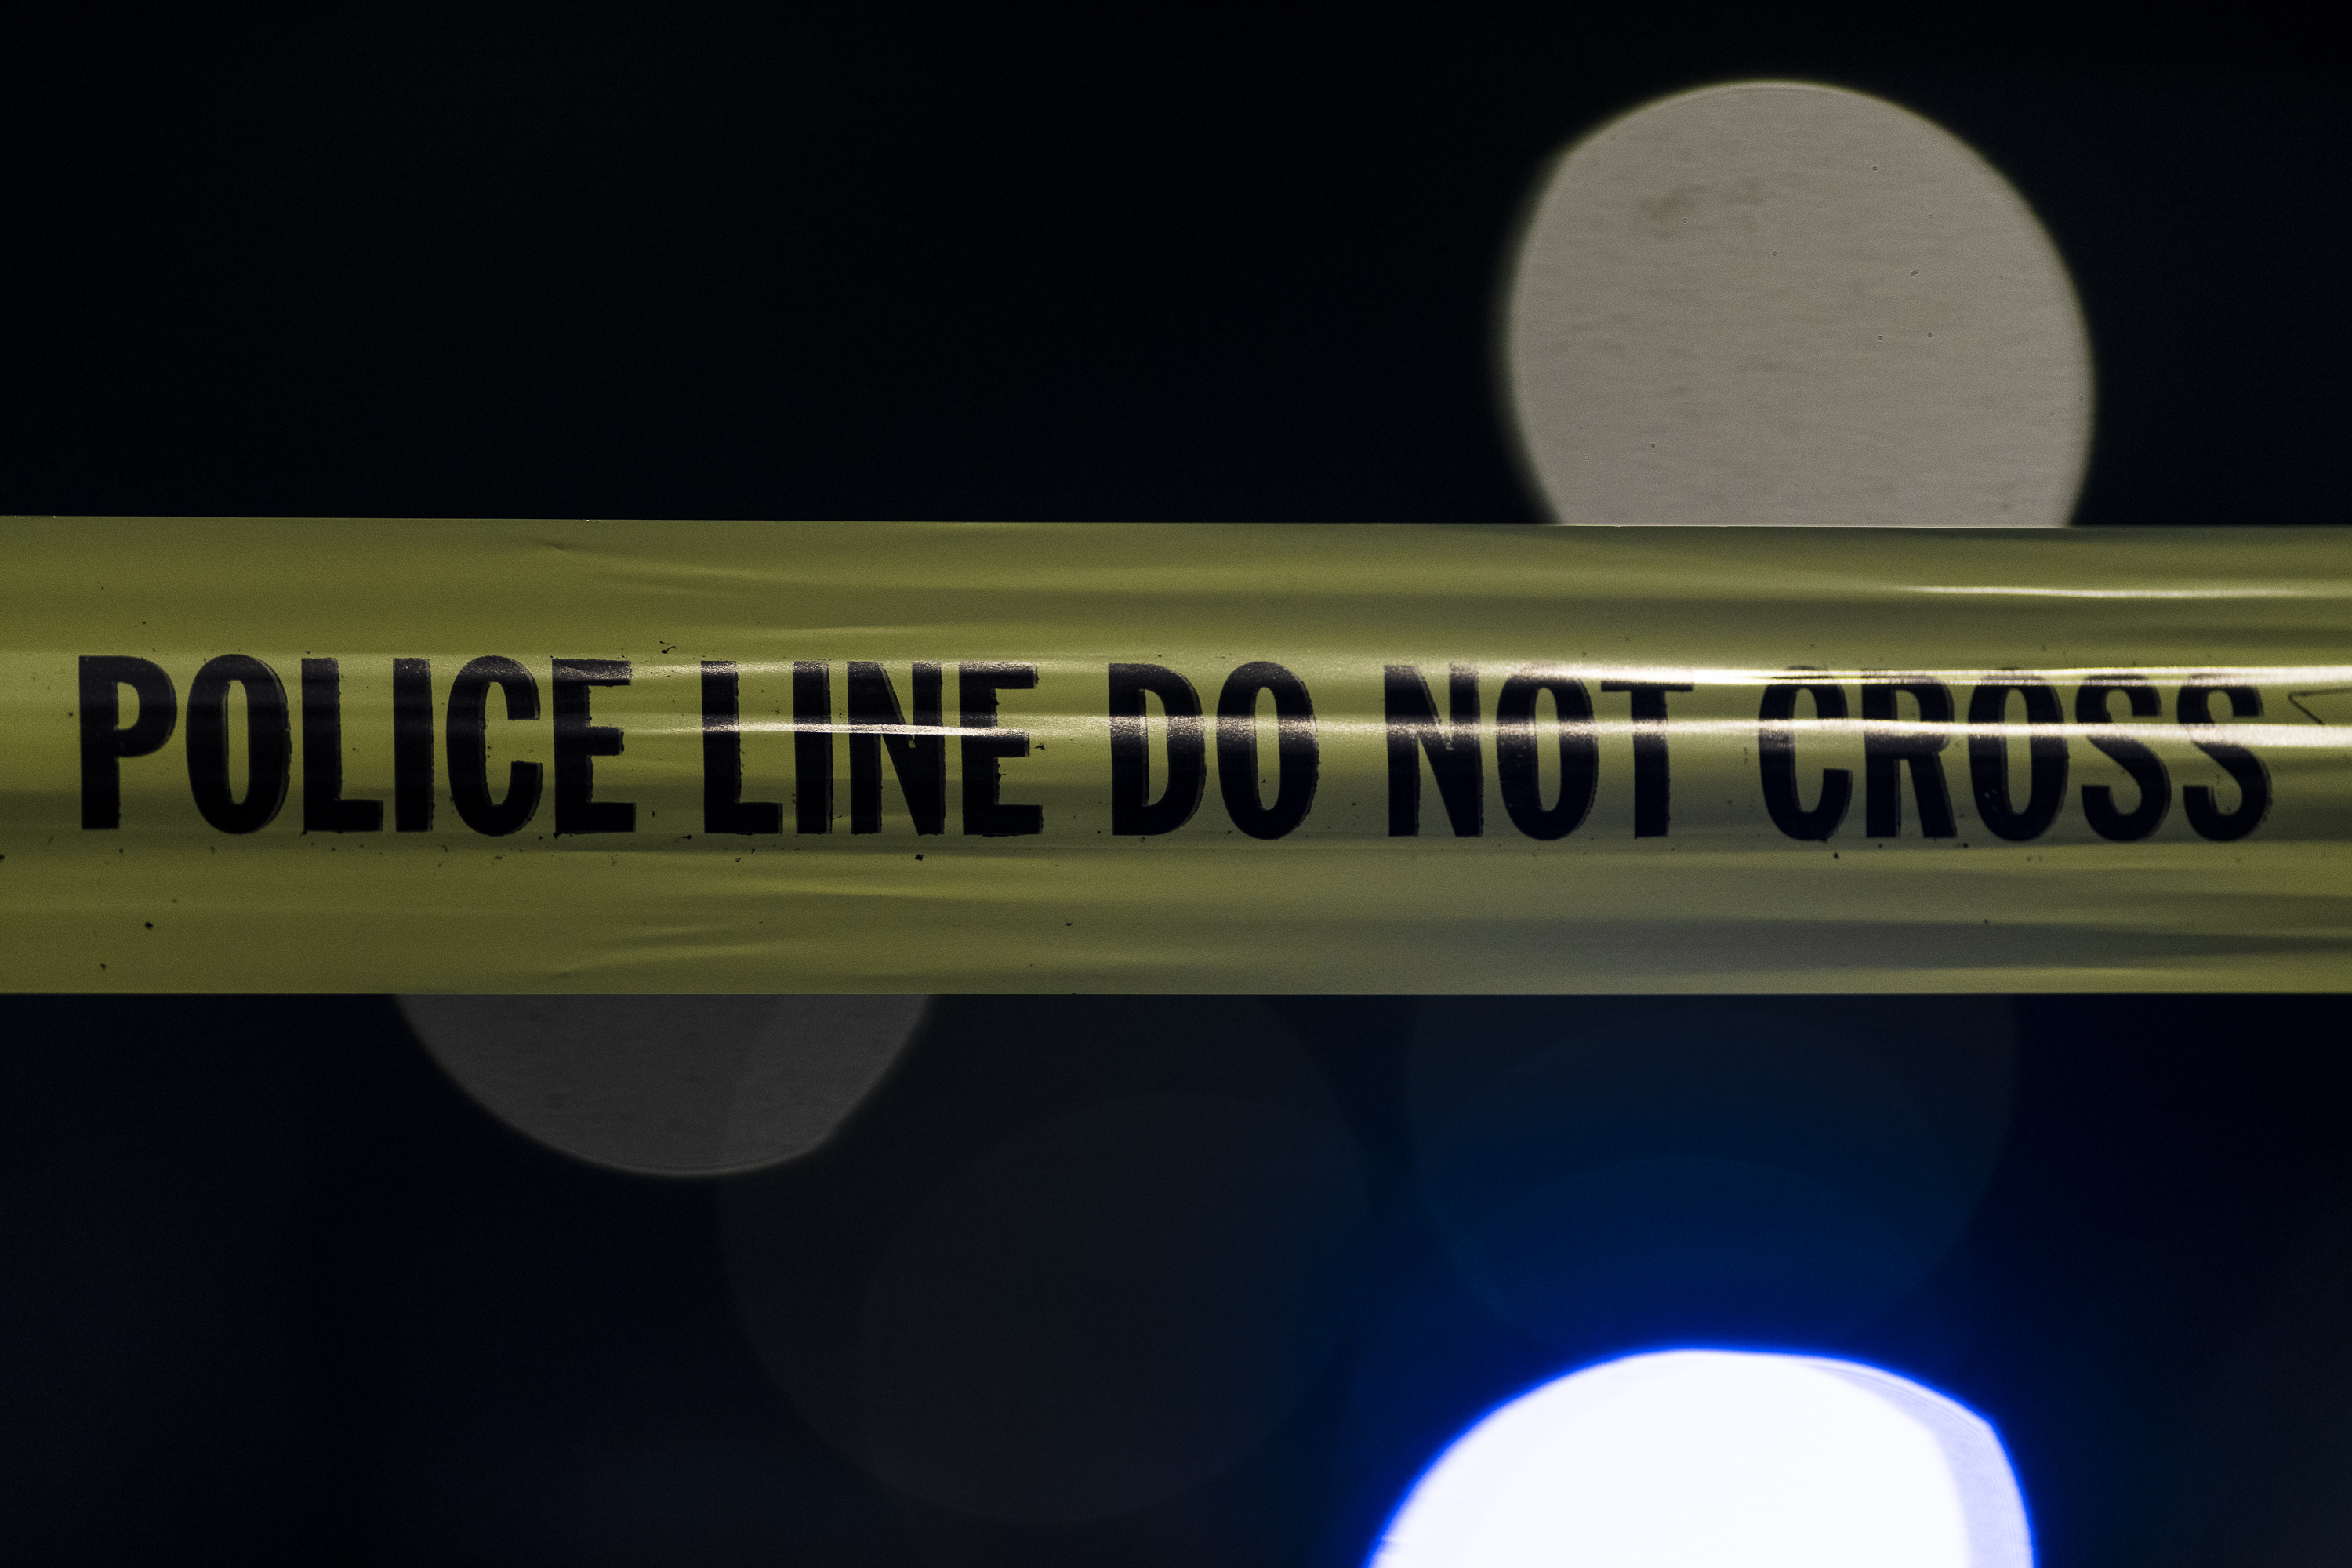 A man was fatally shot Aug. 7, 2020, in the 5900 block of South Peoria Street in Englewood.